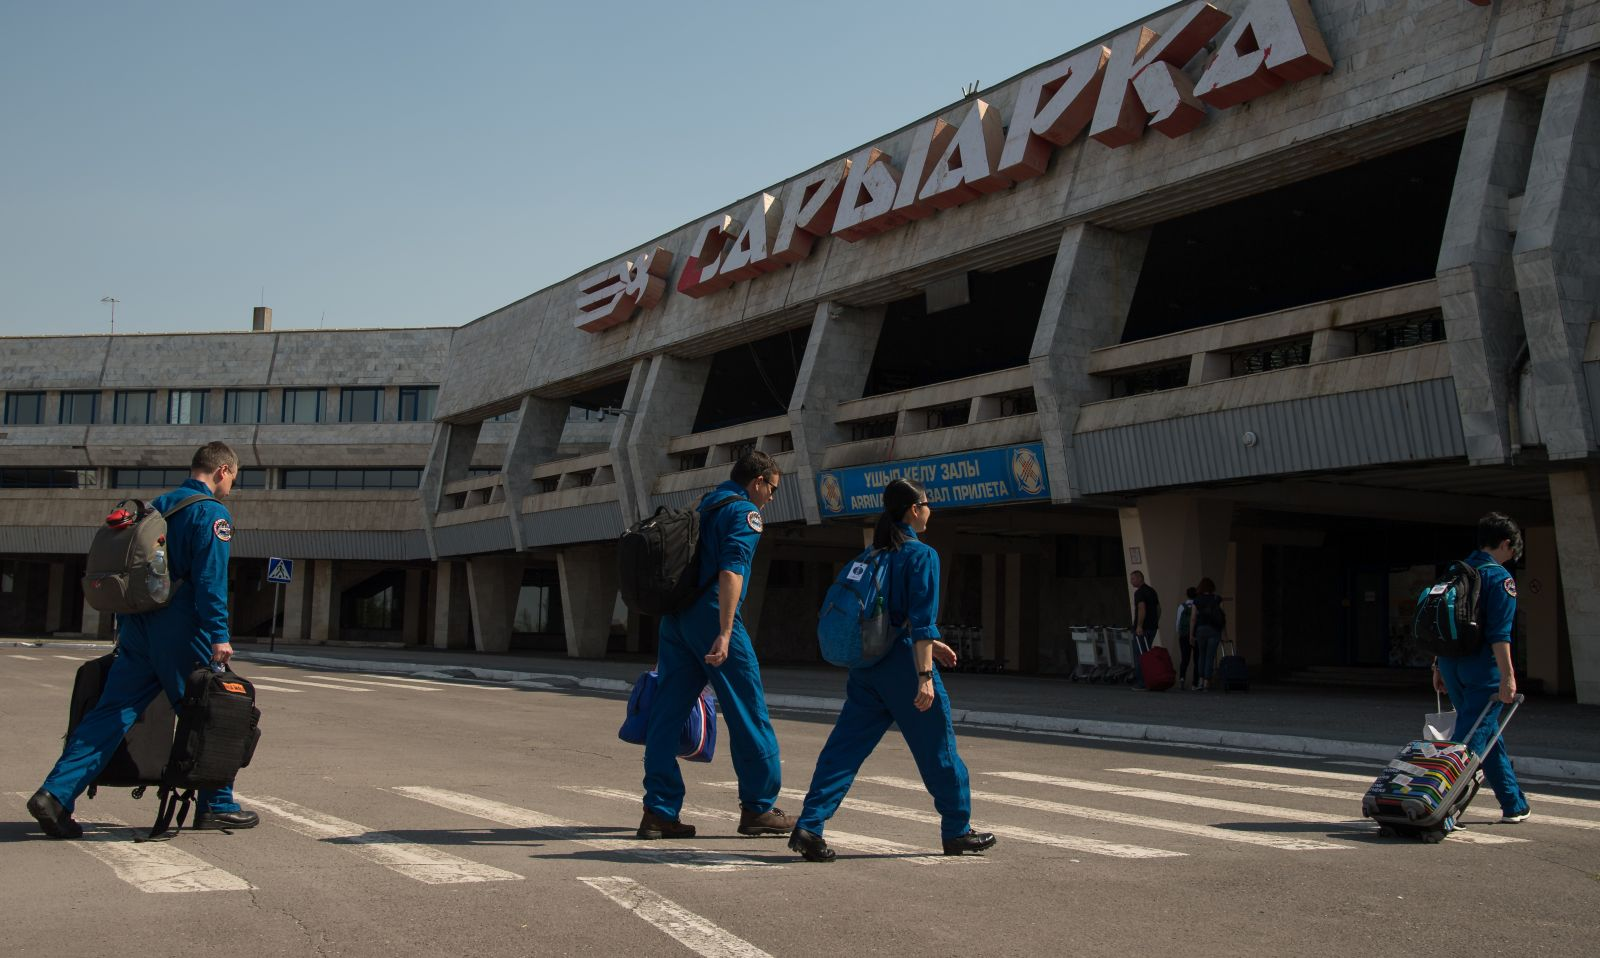 NASA, Roscosmos and Russian Search and Rescue teams deploy from the Karaganda Airport to Zhezkazgan in order to prepare for the Soyuz MS-04 landing. Photo and Caption Credit: BIll Ingalls / NASA